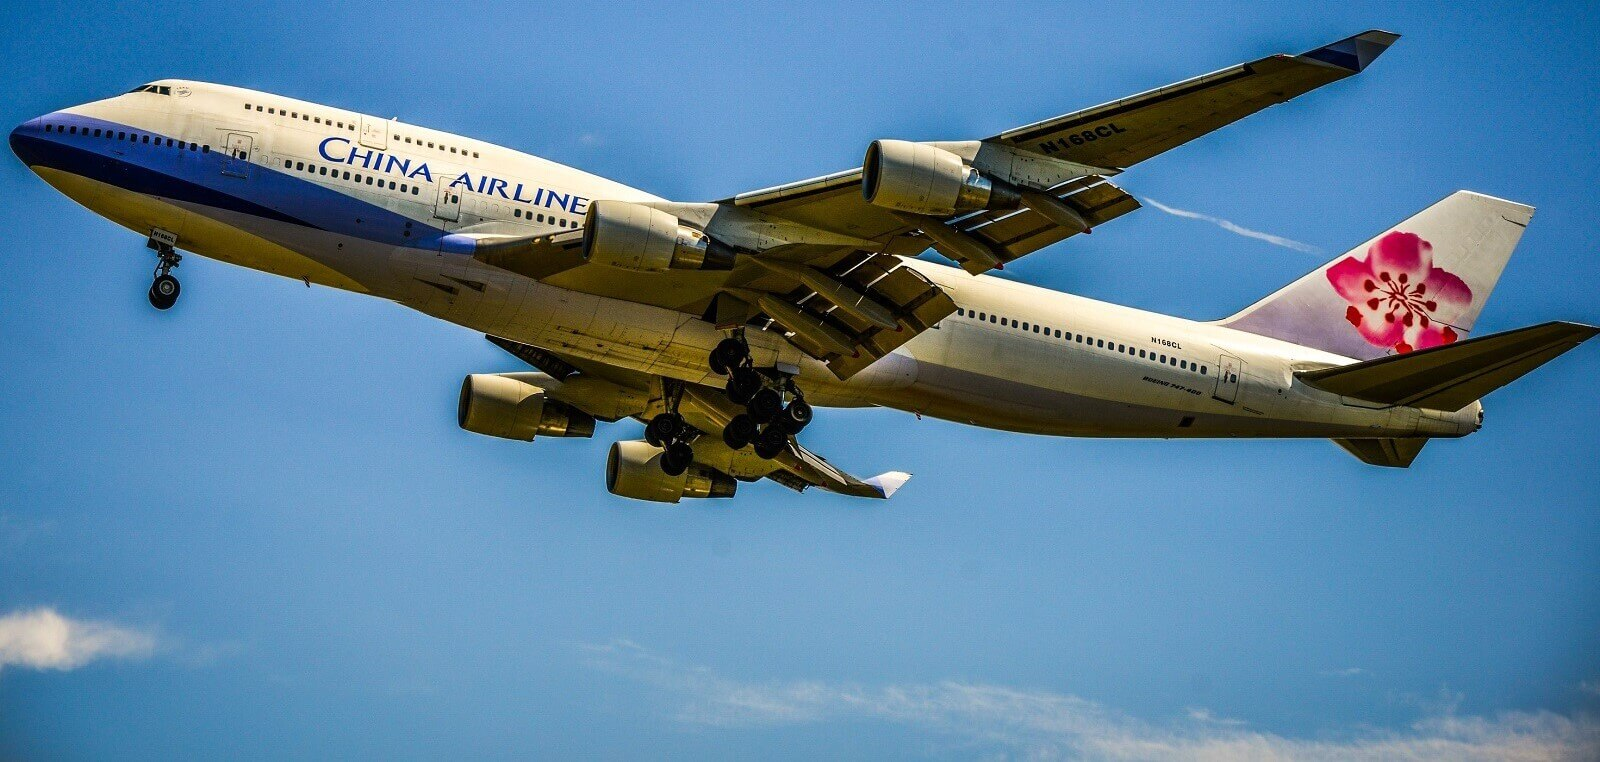 China Airlines Boeing 747 (Photo: Sam Yu/Flickr)